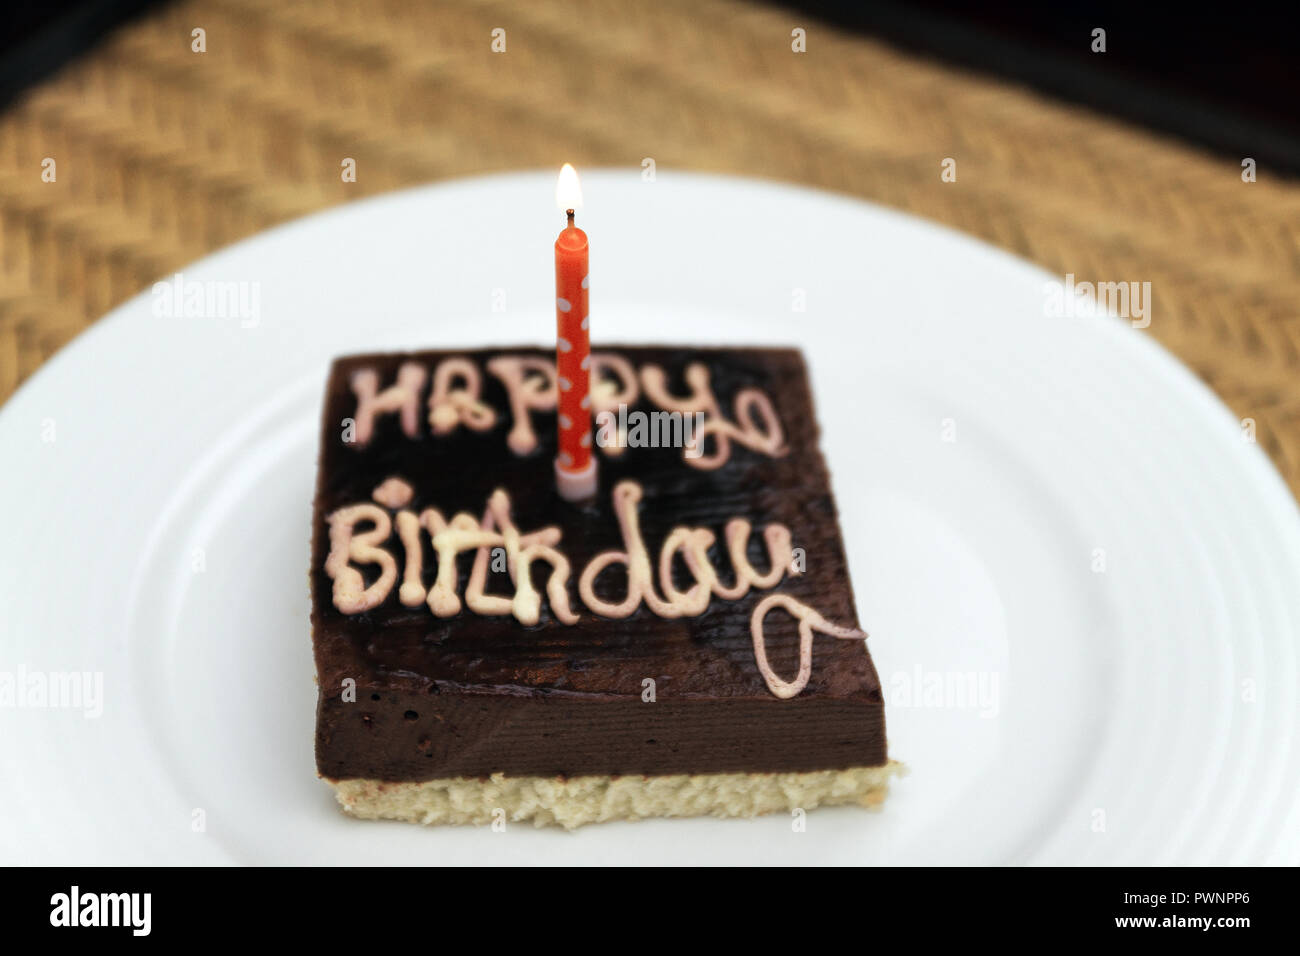 Small Square Festive Chocolate Cake With The Inscription Happy Birthday And One Candle On A White Plate